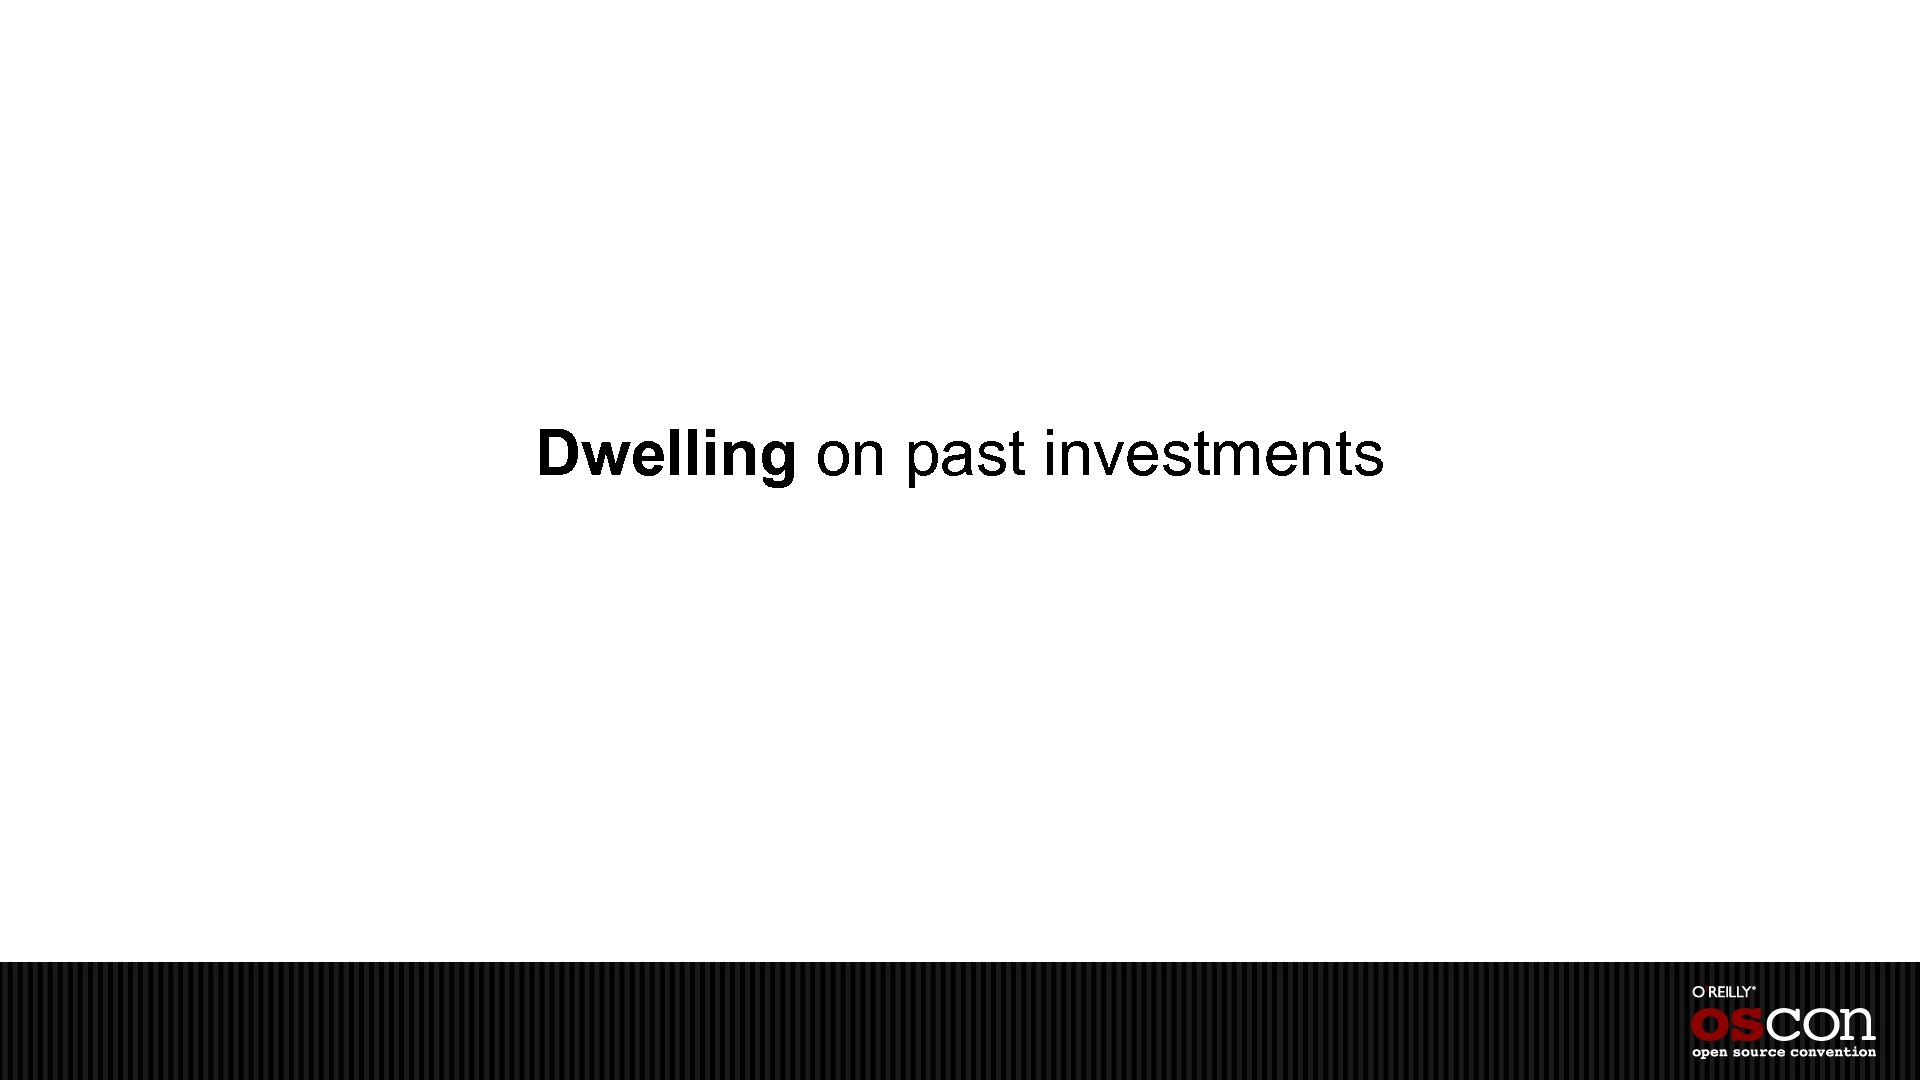 Dwelling on past investments